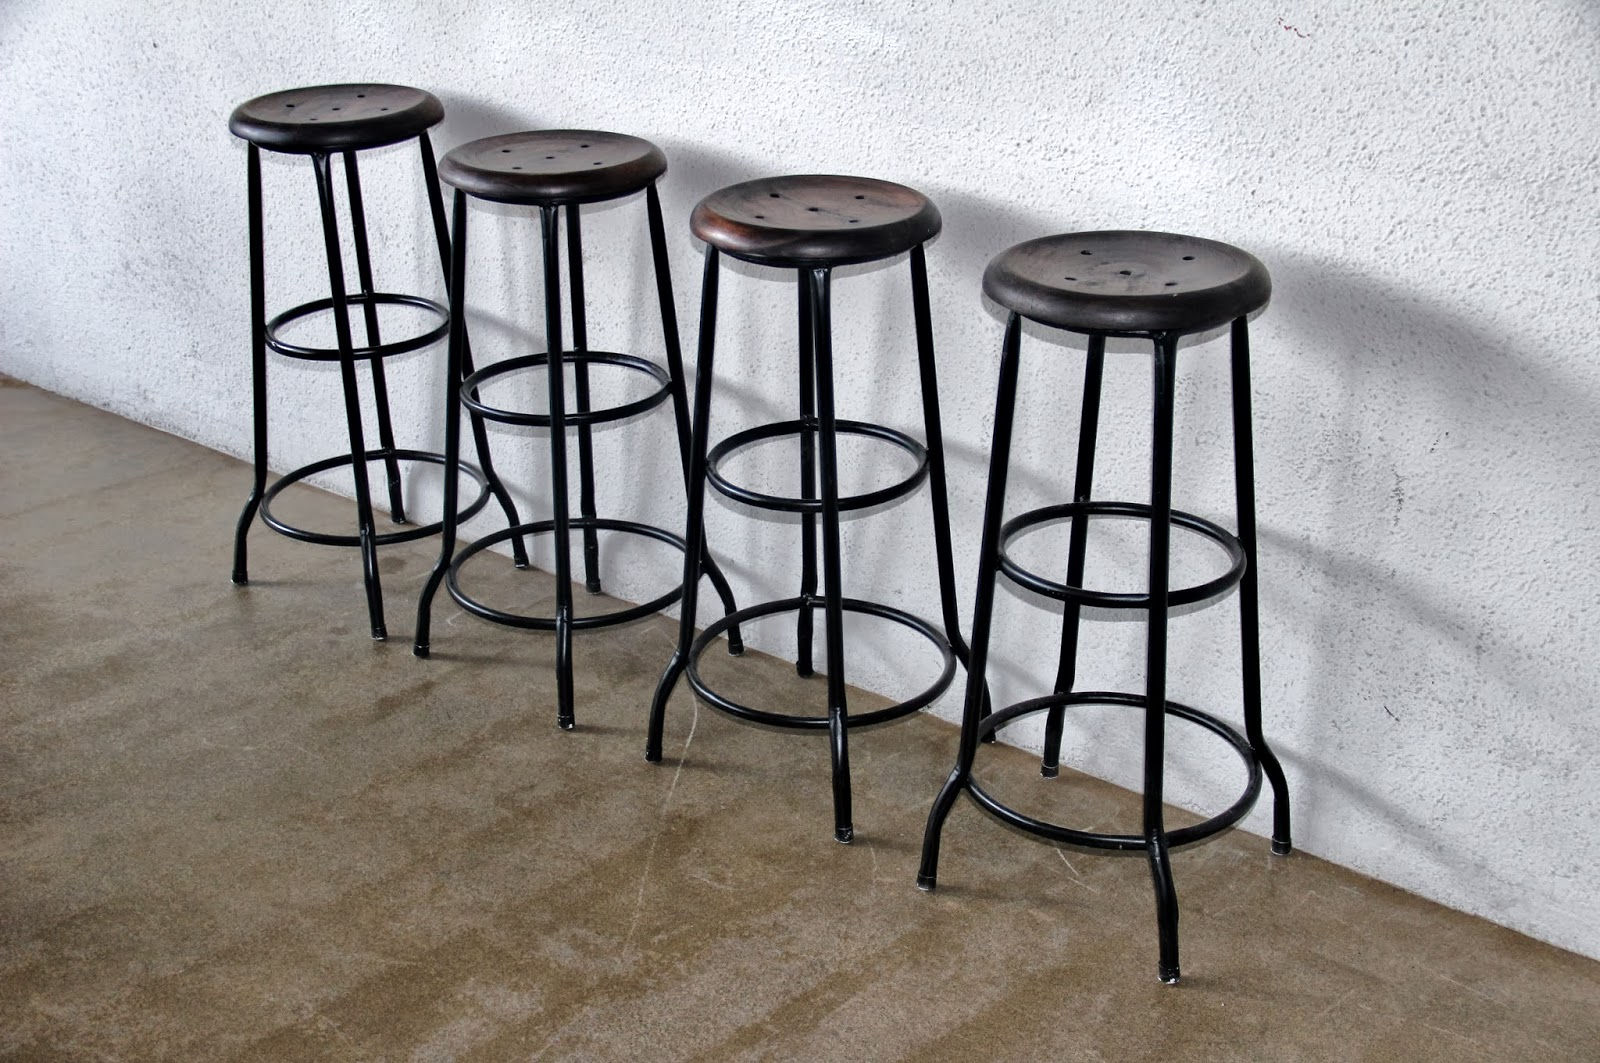 bar stool chair legs swivel loveseat couch second charm furniture stools barstools chairs and